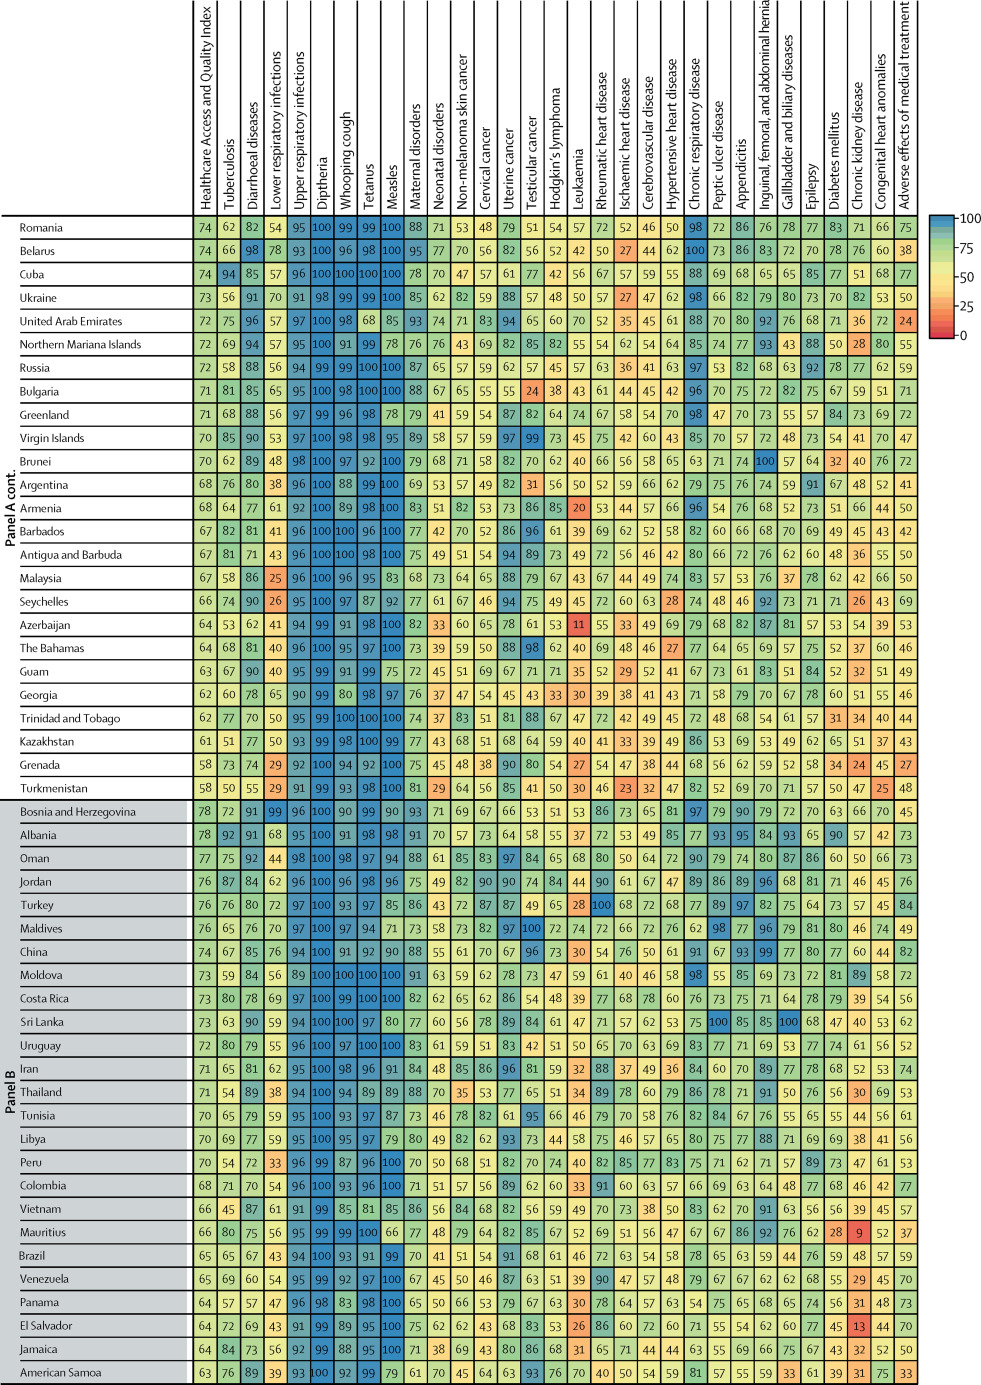 Healthcare Access and Quality Index based on mortality from causes